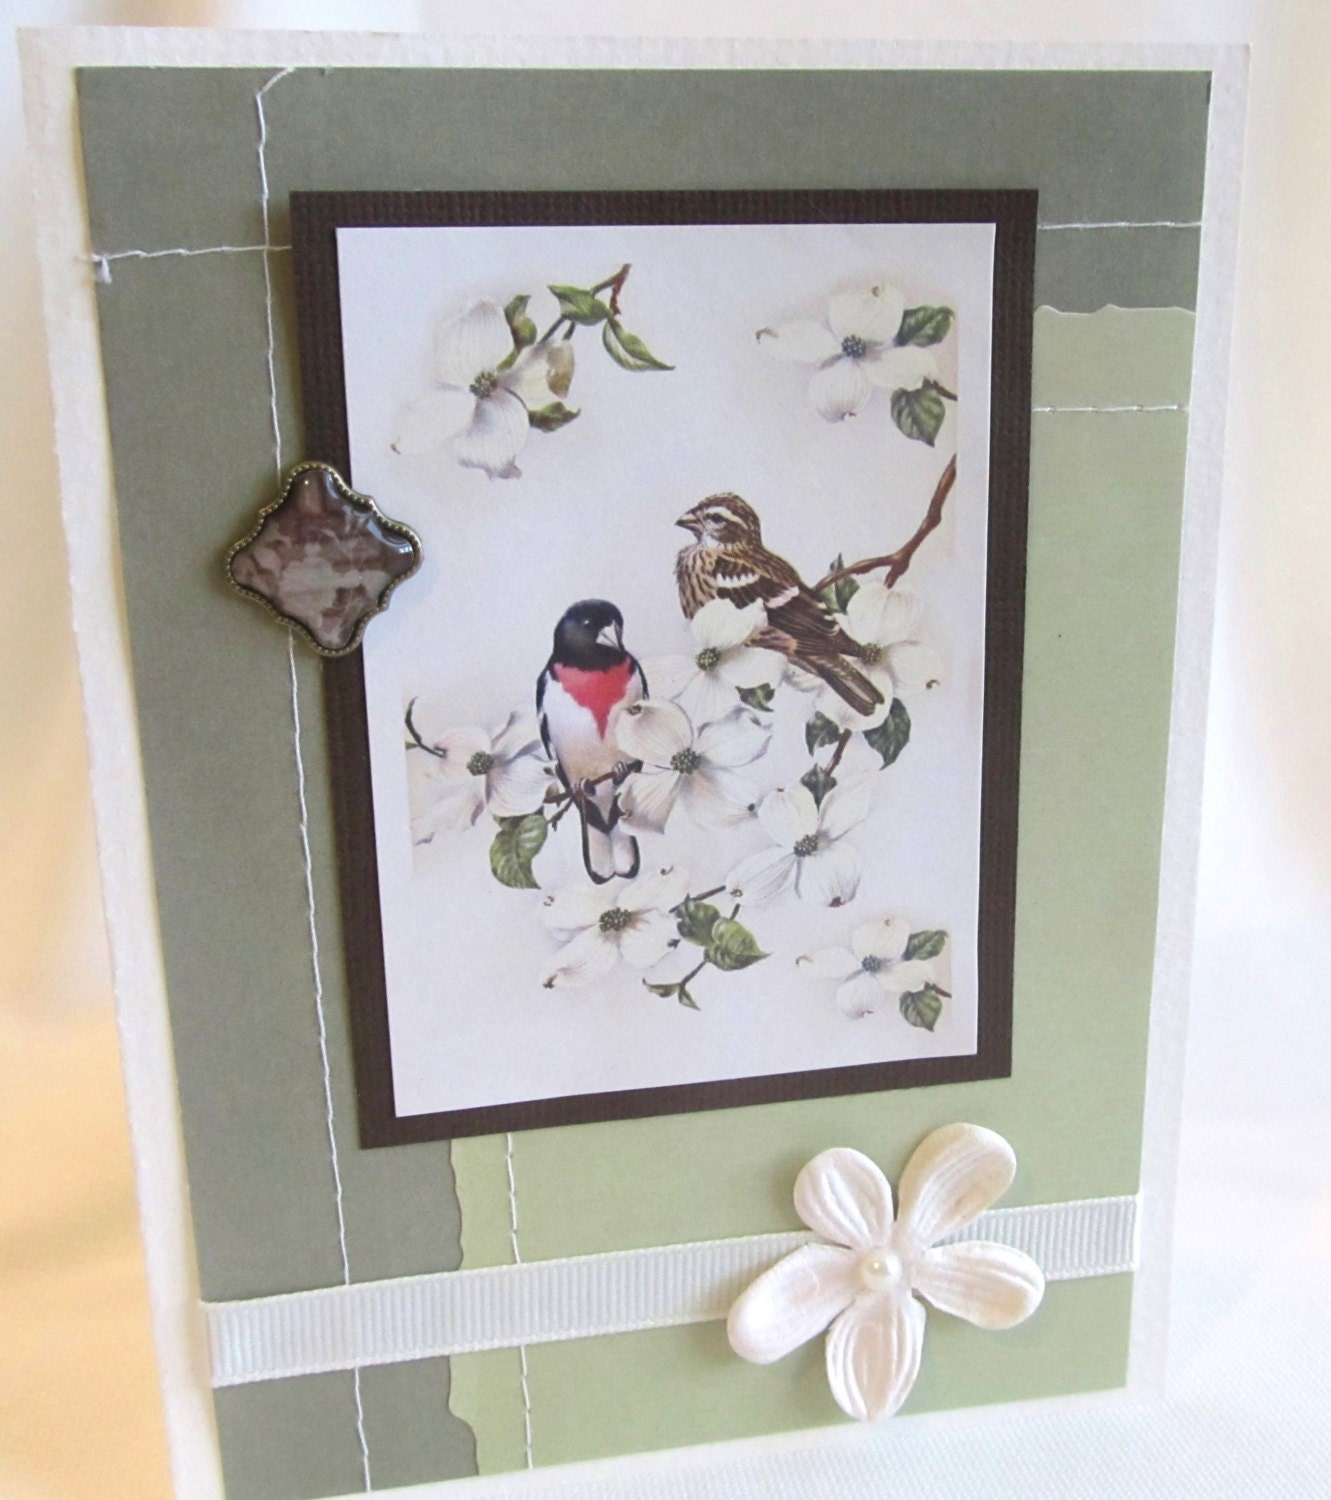 All Occasion Card - Handmade Card - Ivory Card - Blank Card - Birds and Flowers - Soft Natural Tones - Vintage Style - Charming Detail - PrettyByrdDesigns